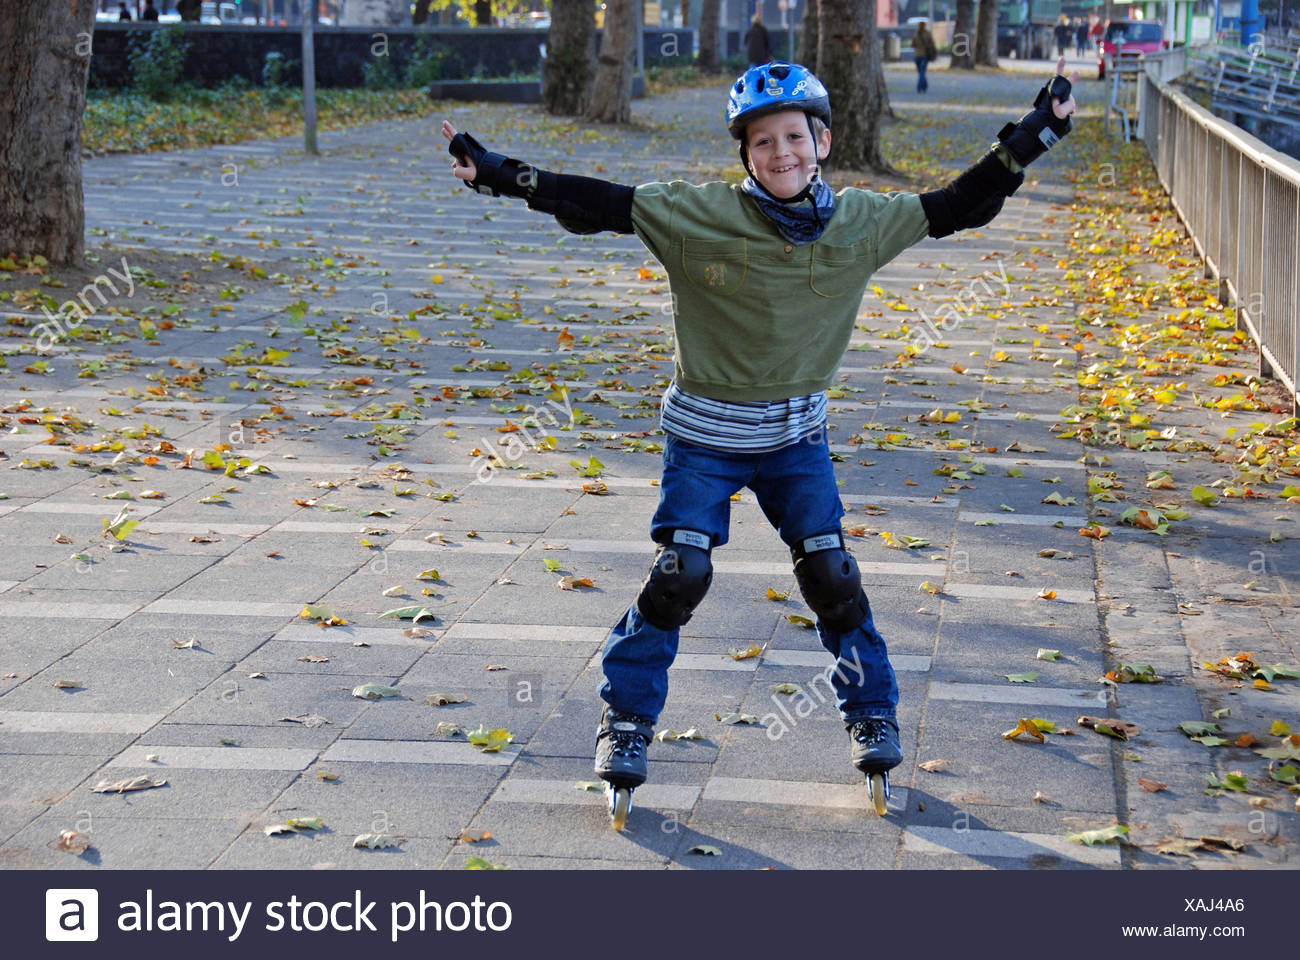 Young inline-skater, Cologne, North Rhine-Westphalia, Germany Stock Photo